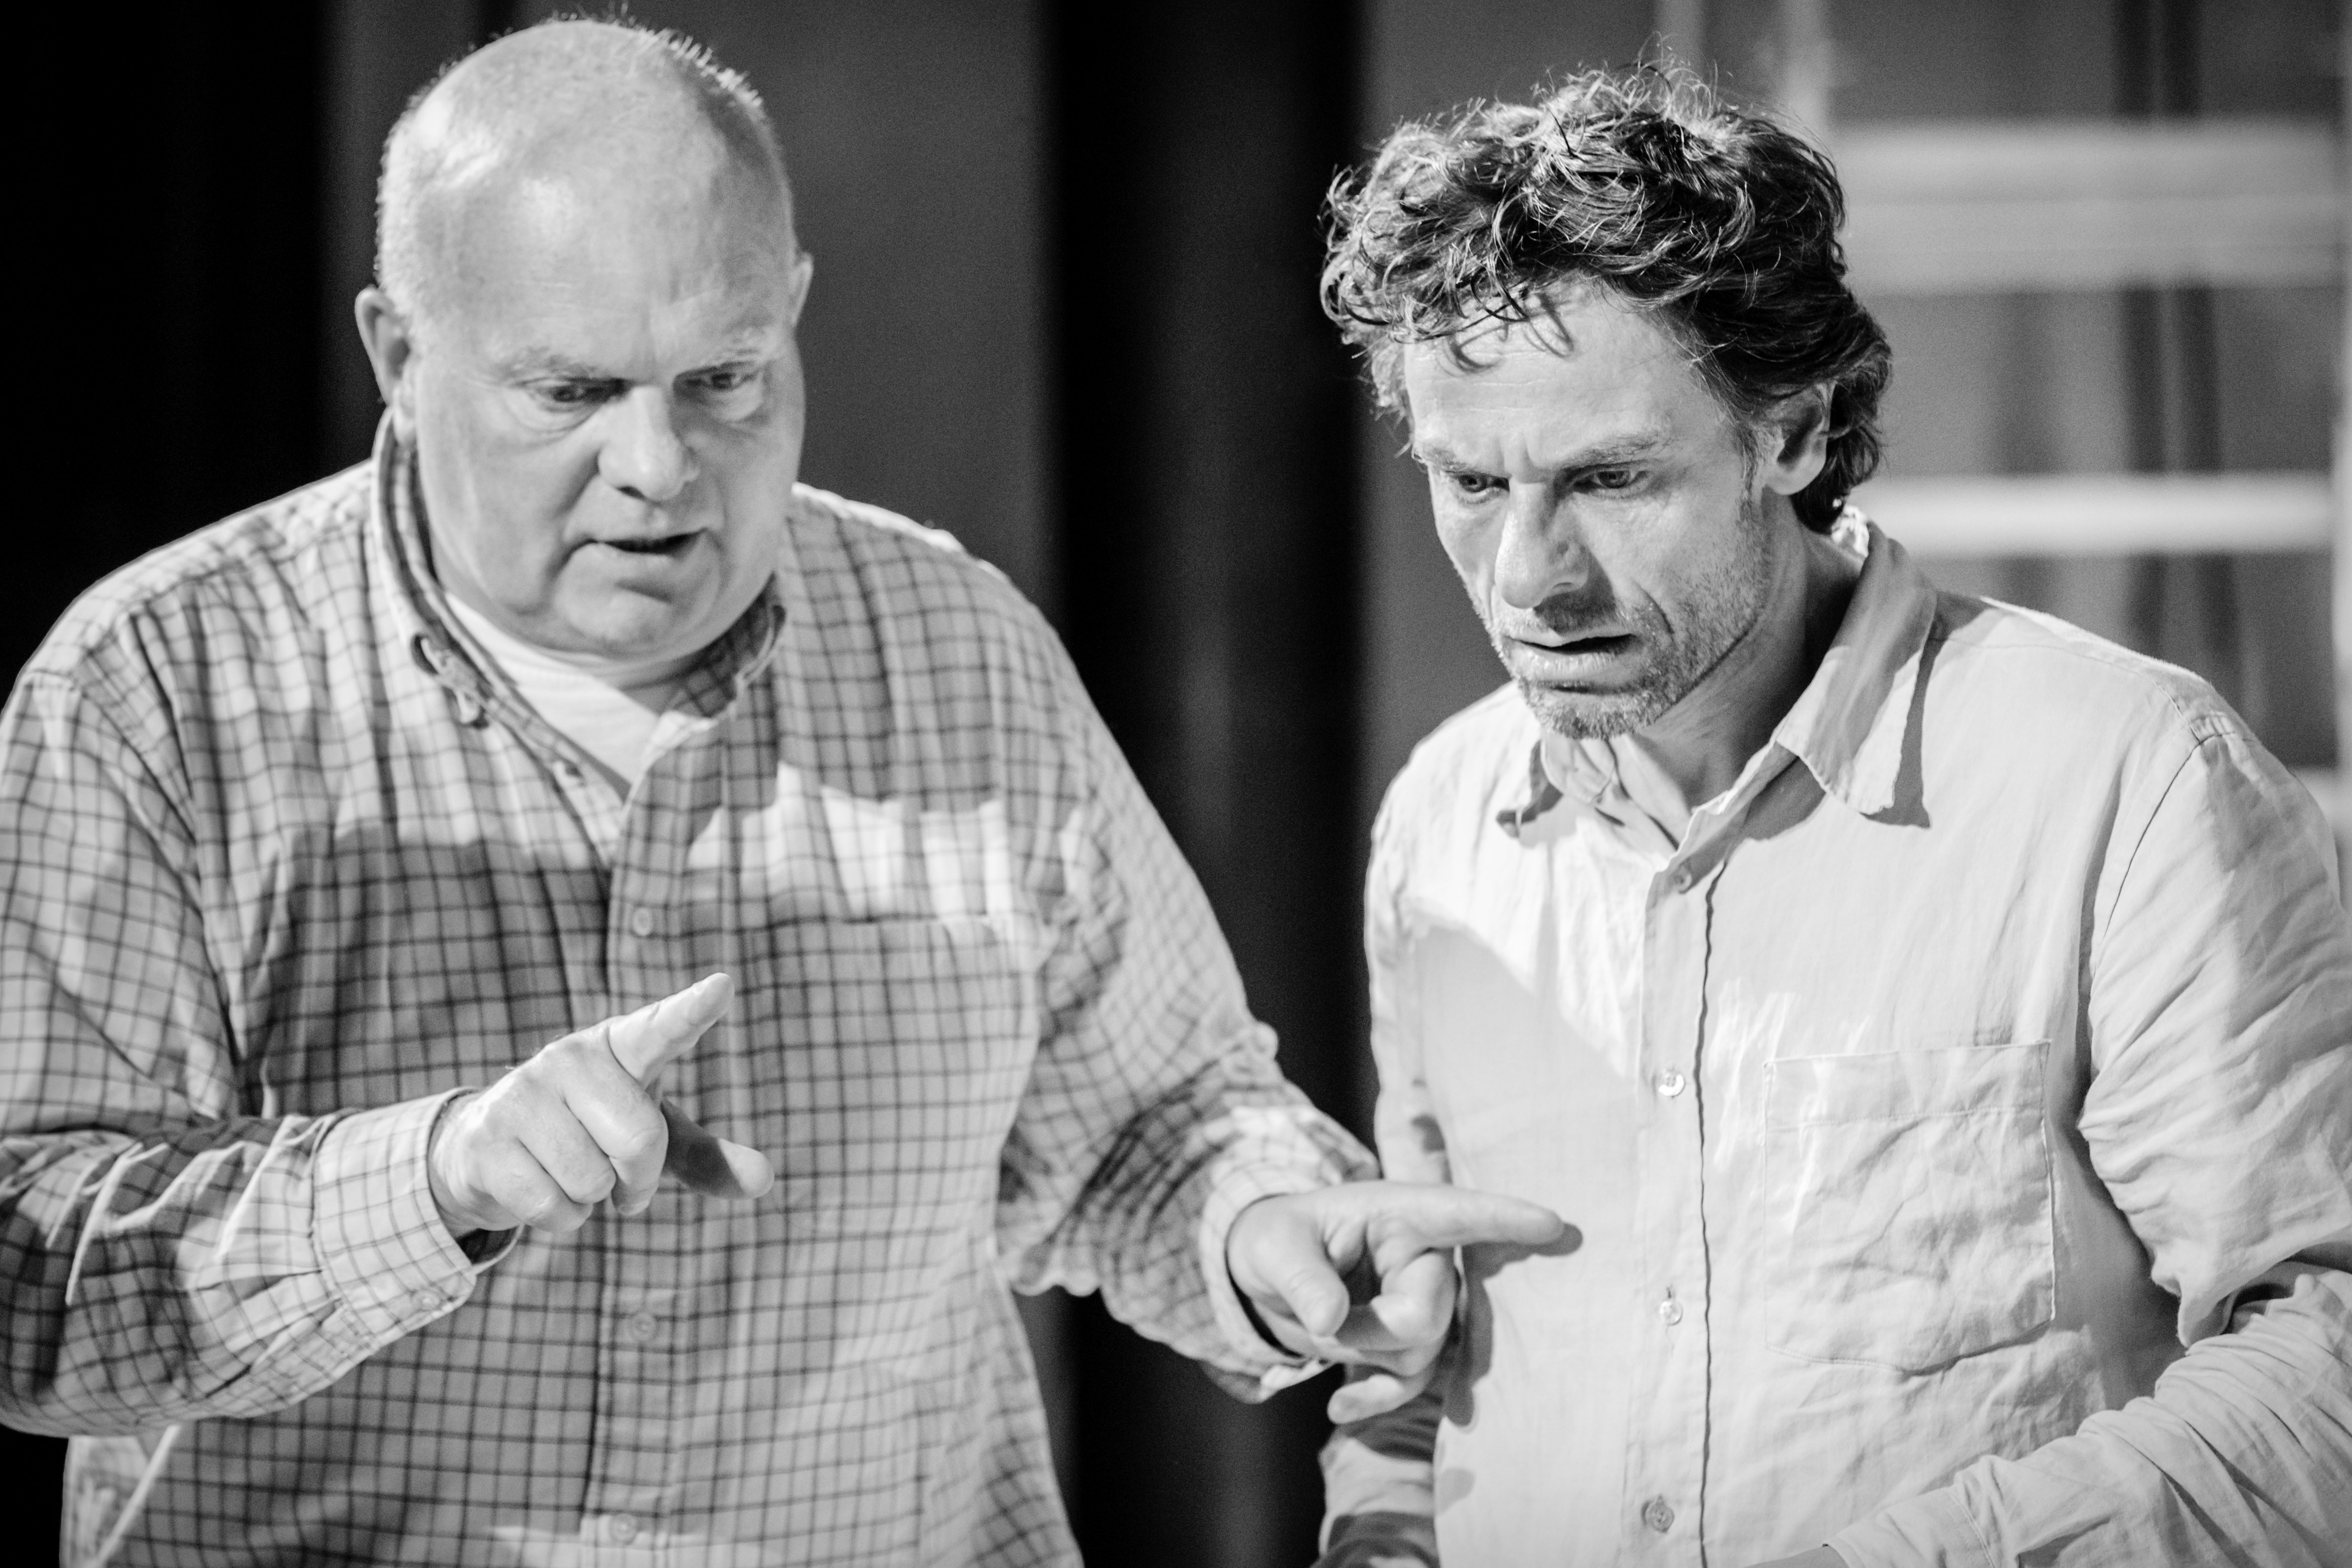 Declan Donnellan and Christophe Grégoire